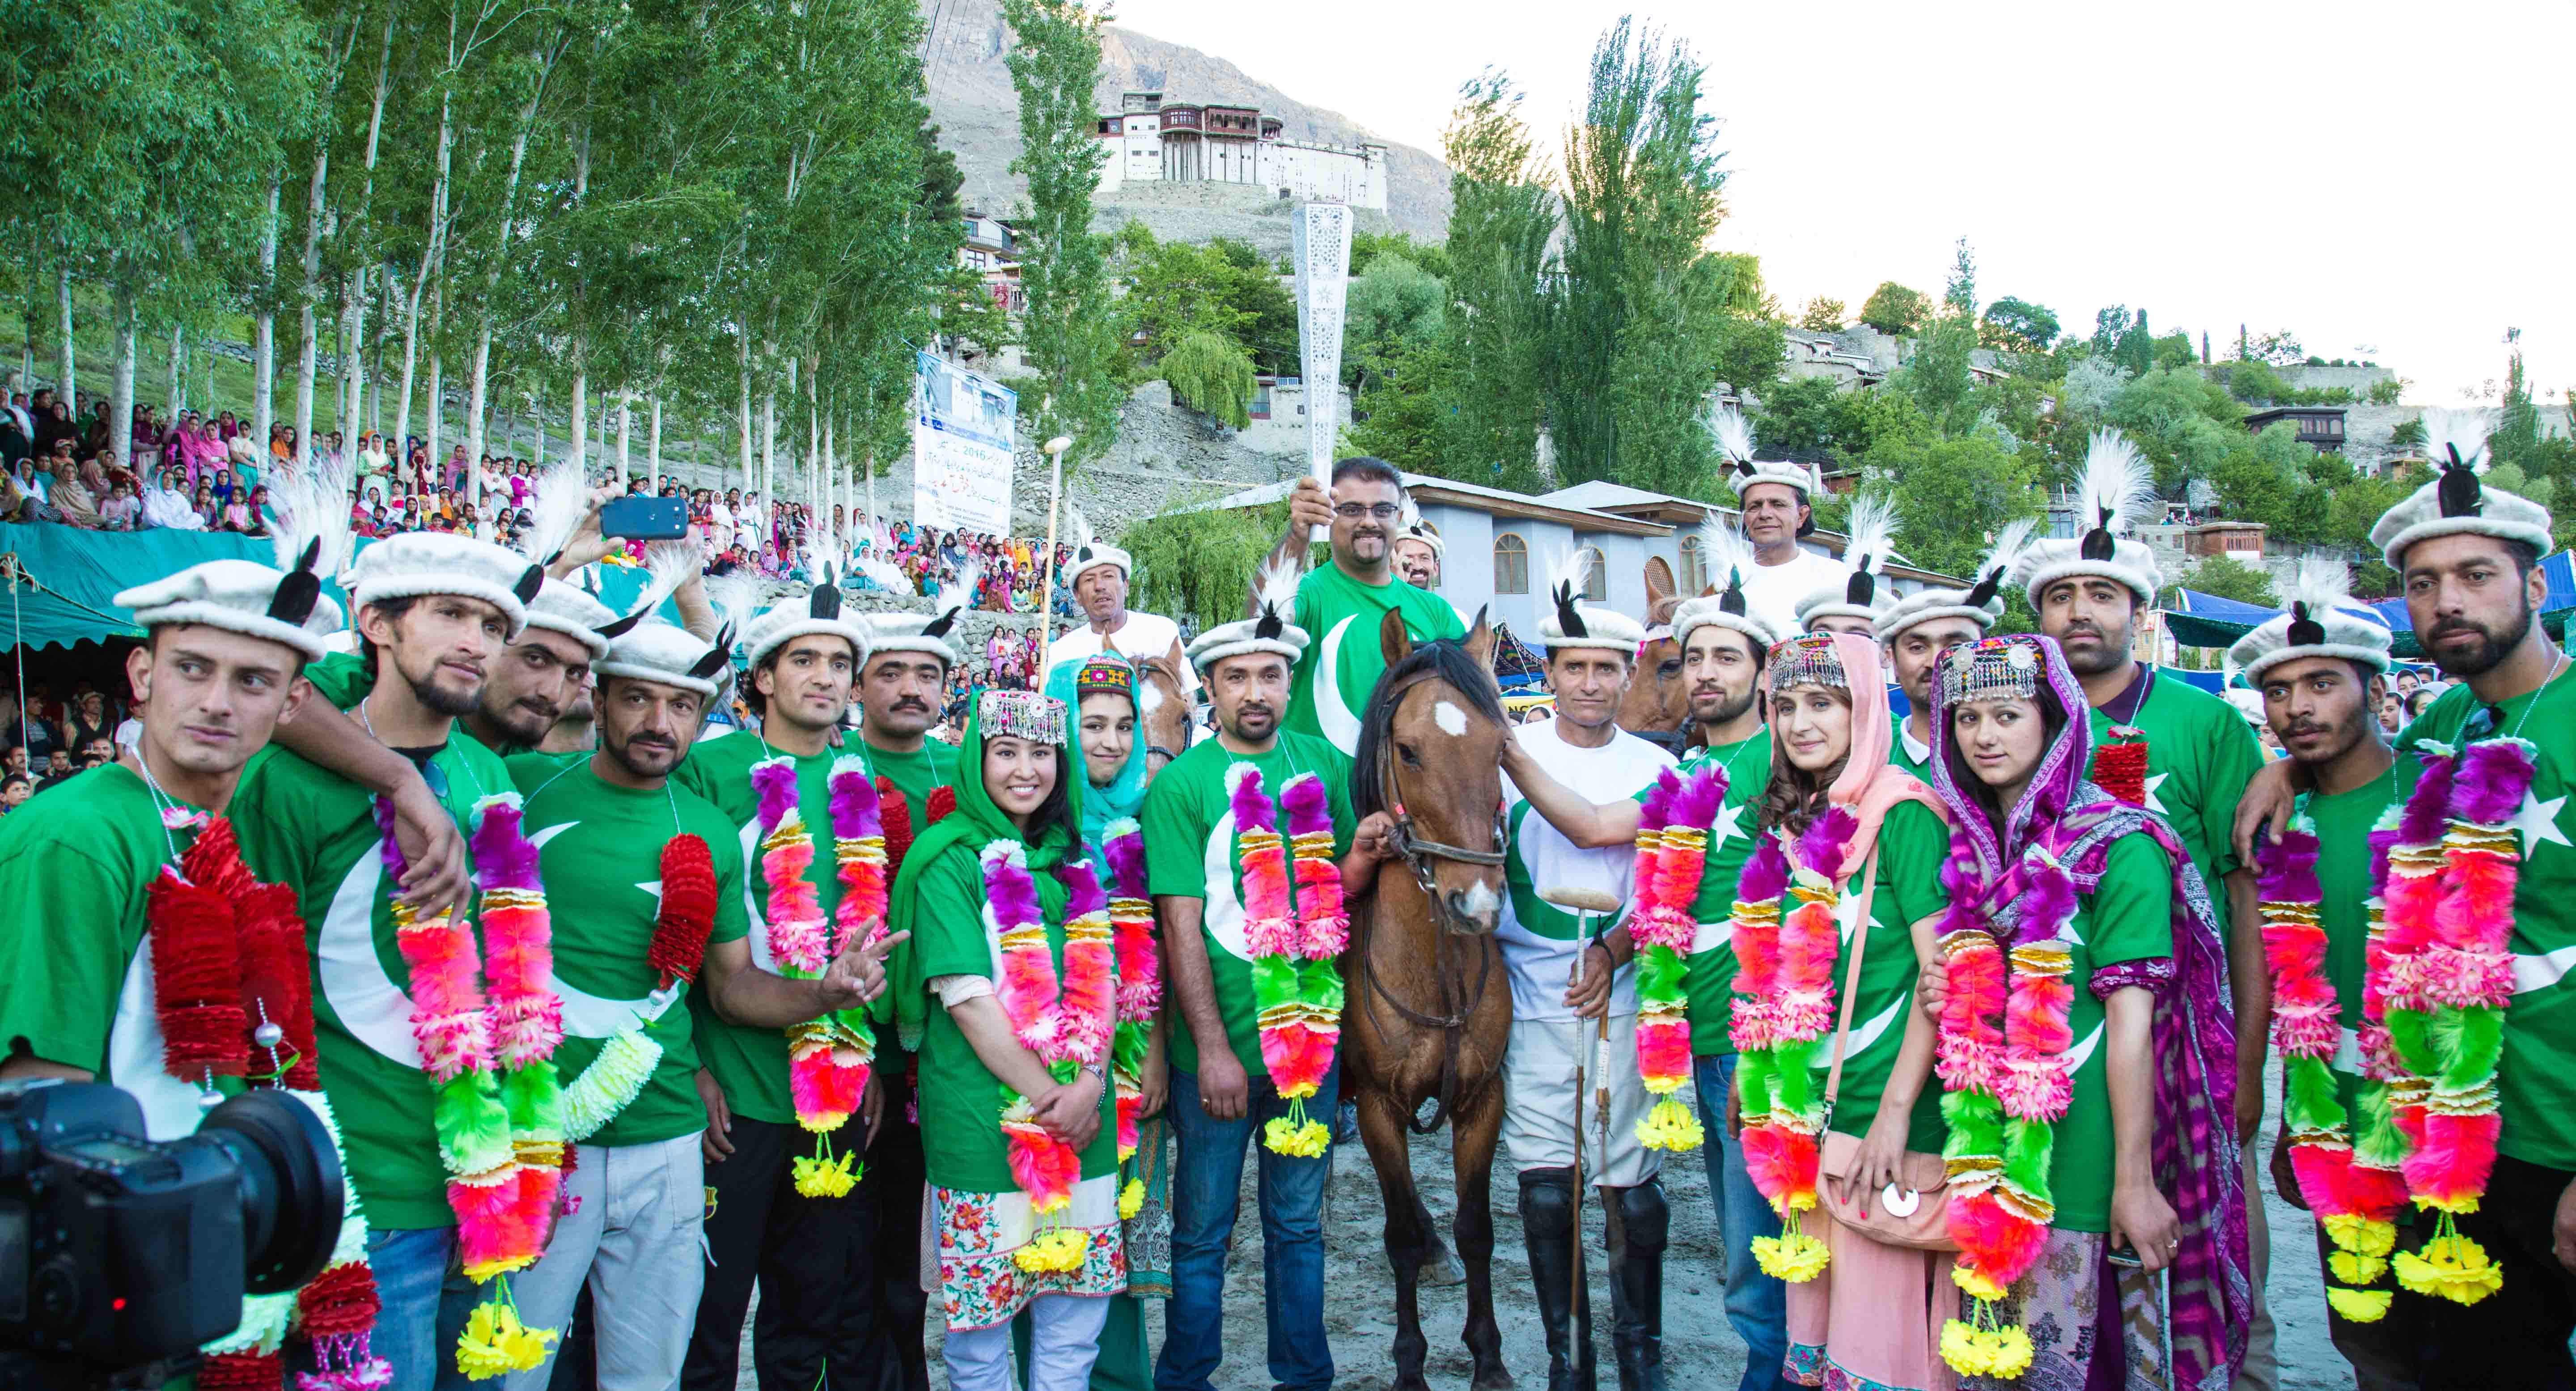 Fanous of  Jubilee Games 2016 warmly received in Hunza Valley